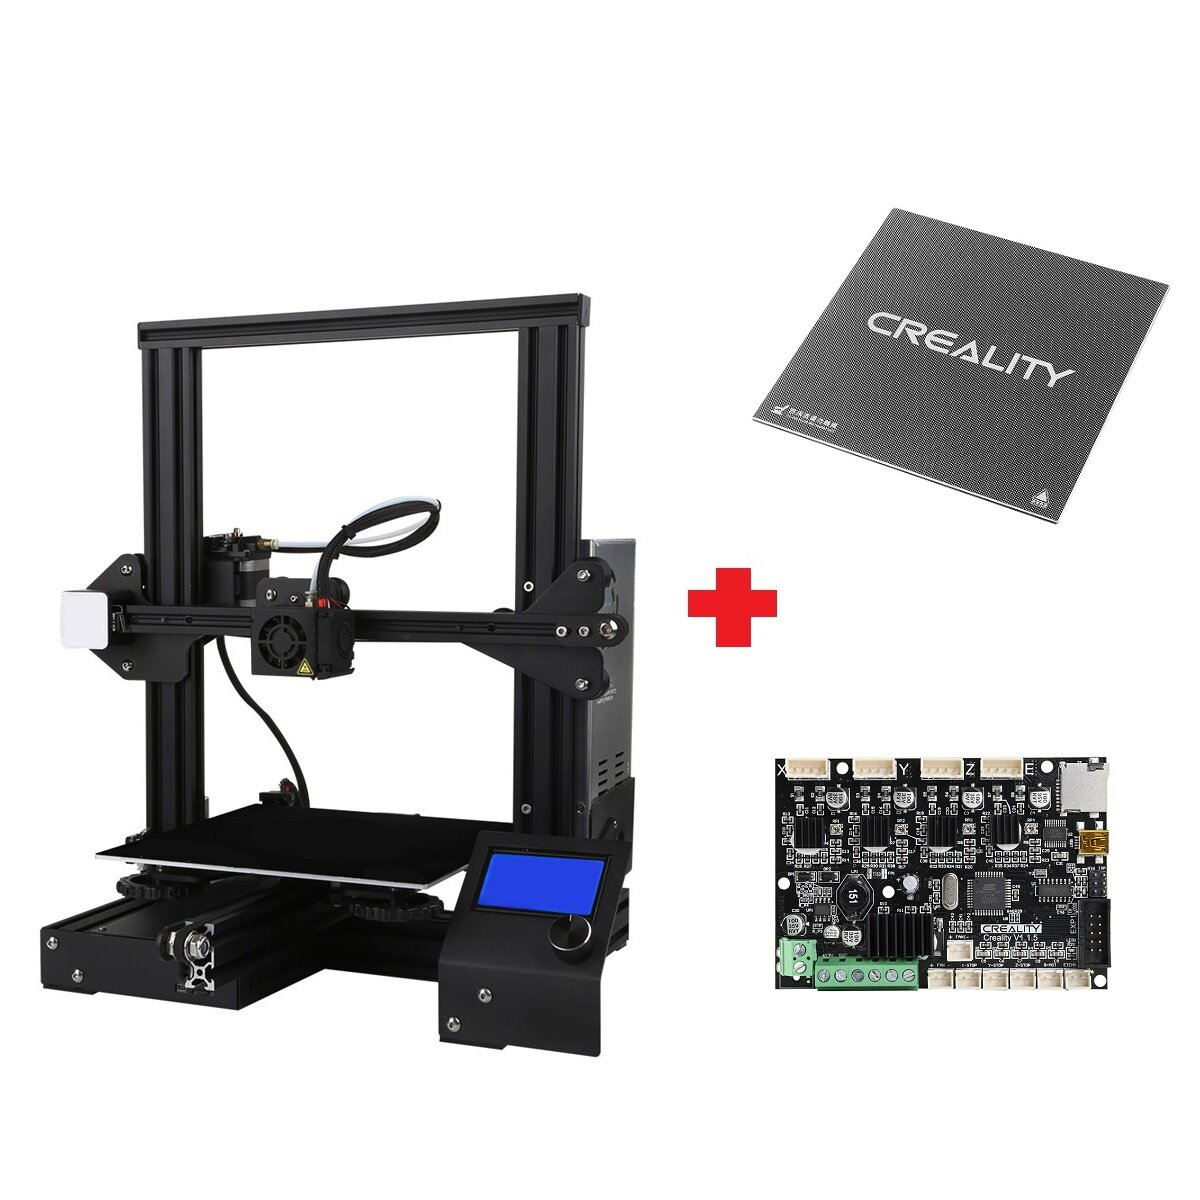 Creality 3D® Customized Version Ender-3X / Ender-3Xs V-slot Prusa I3 3D Printer Kit 220x220x250mm Printing Size With Removable Glass Plate Platform/V1.1.5 Super Silent Mainboard/Power Resume Function